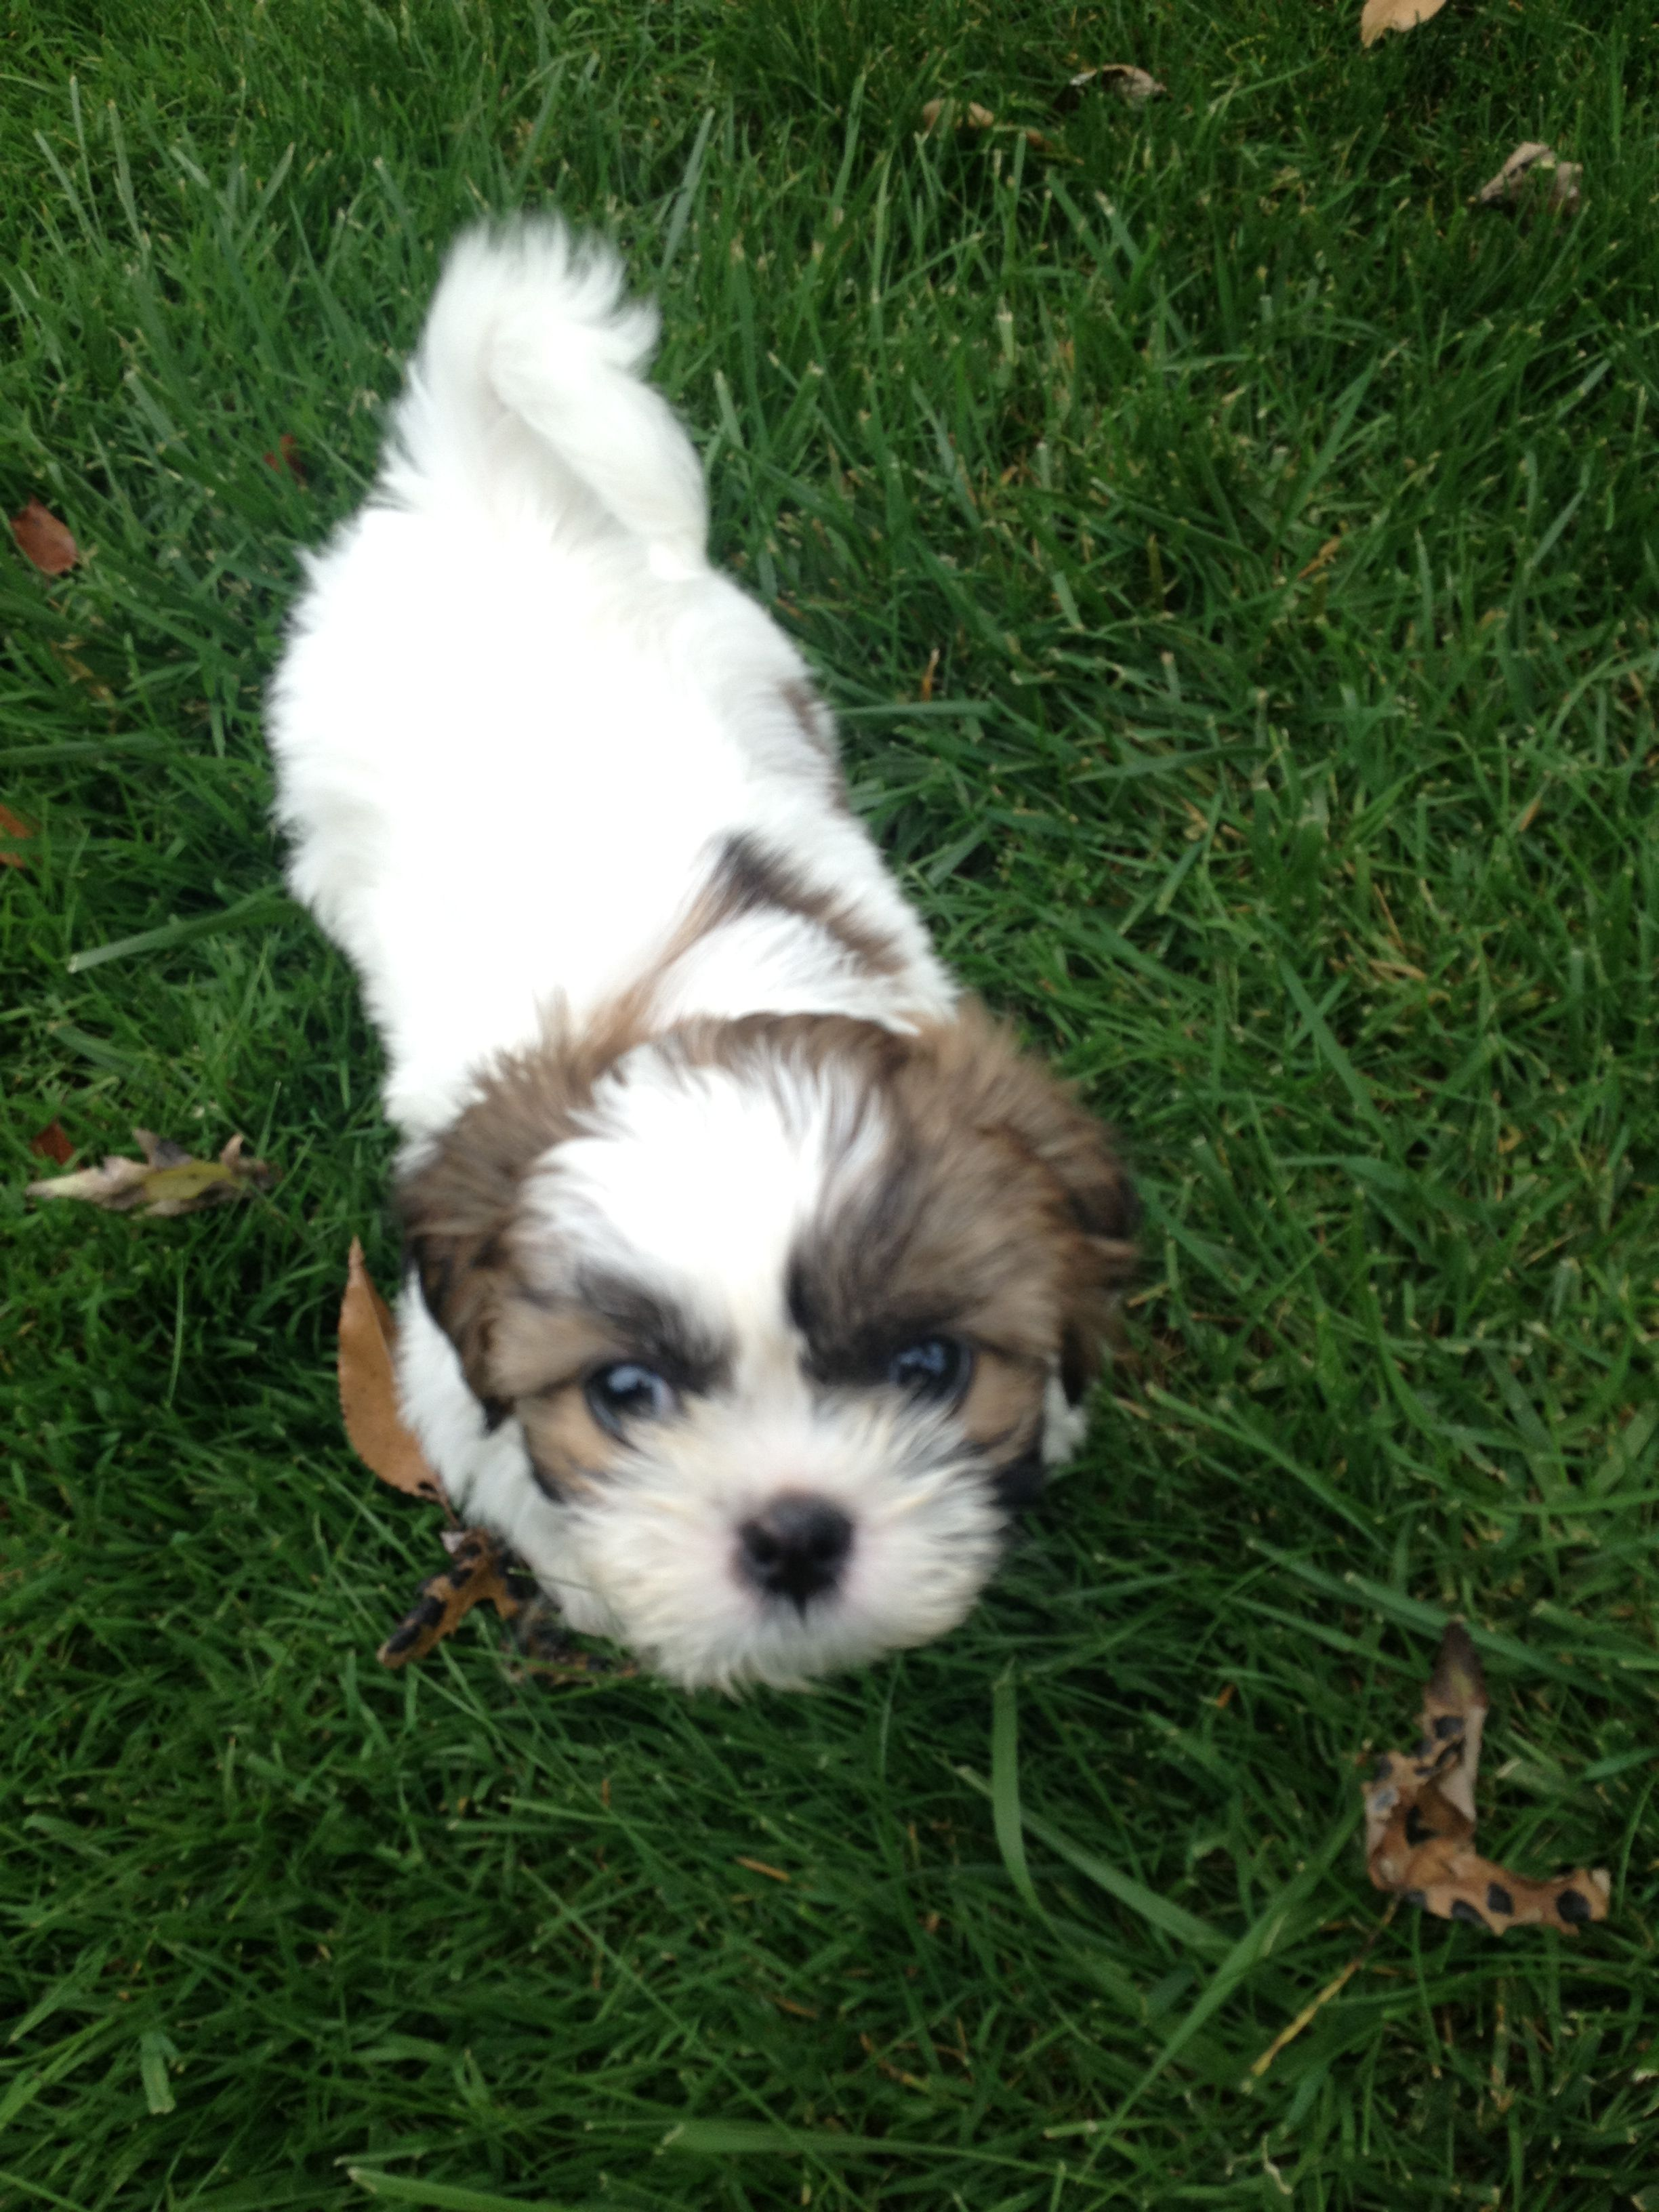 Can not wait to get our little guy shih tzu puppy shih